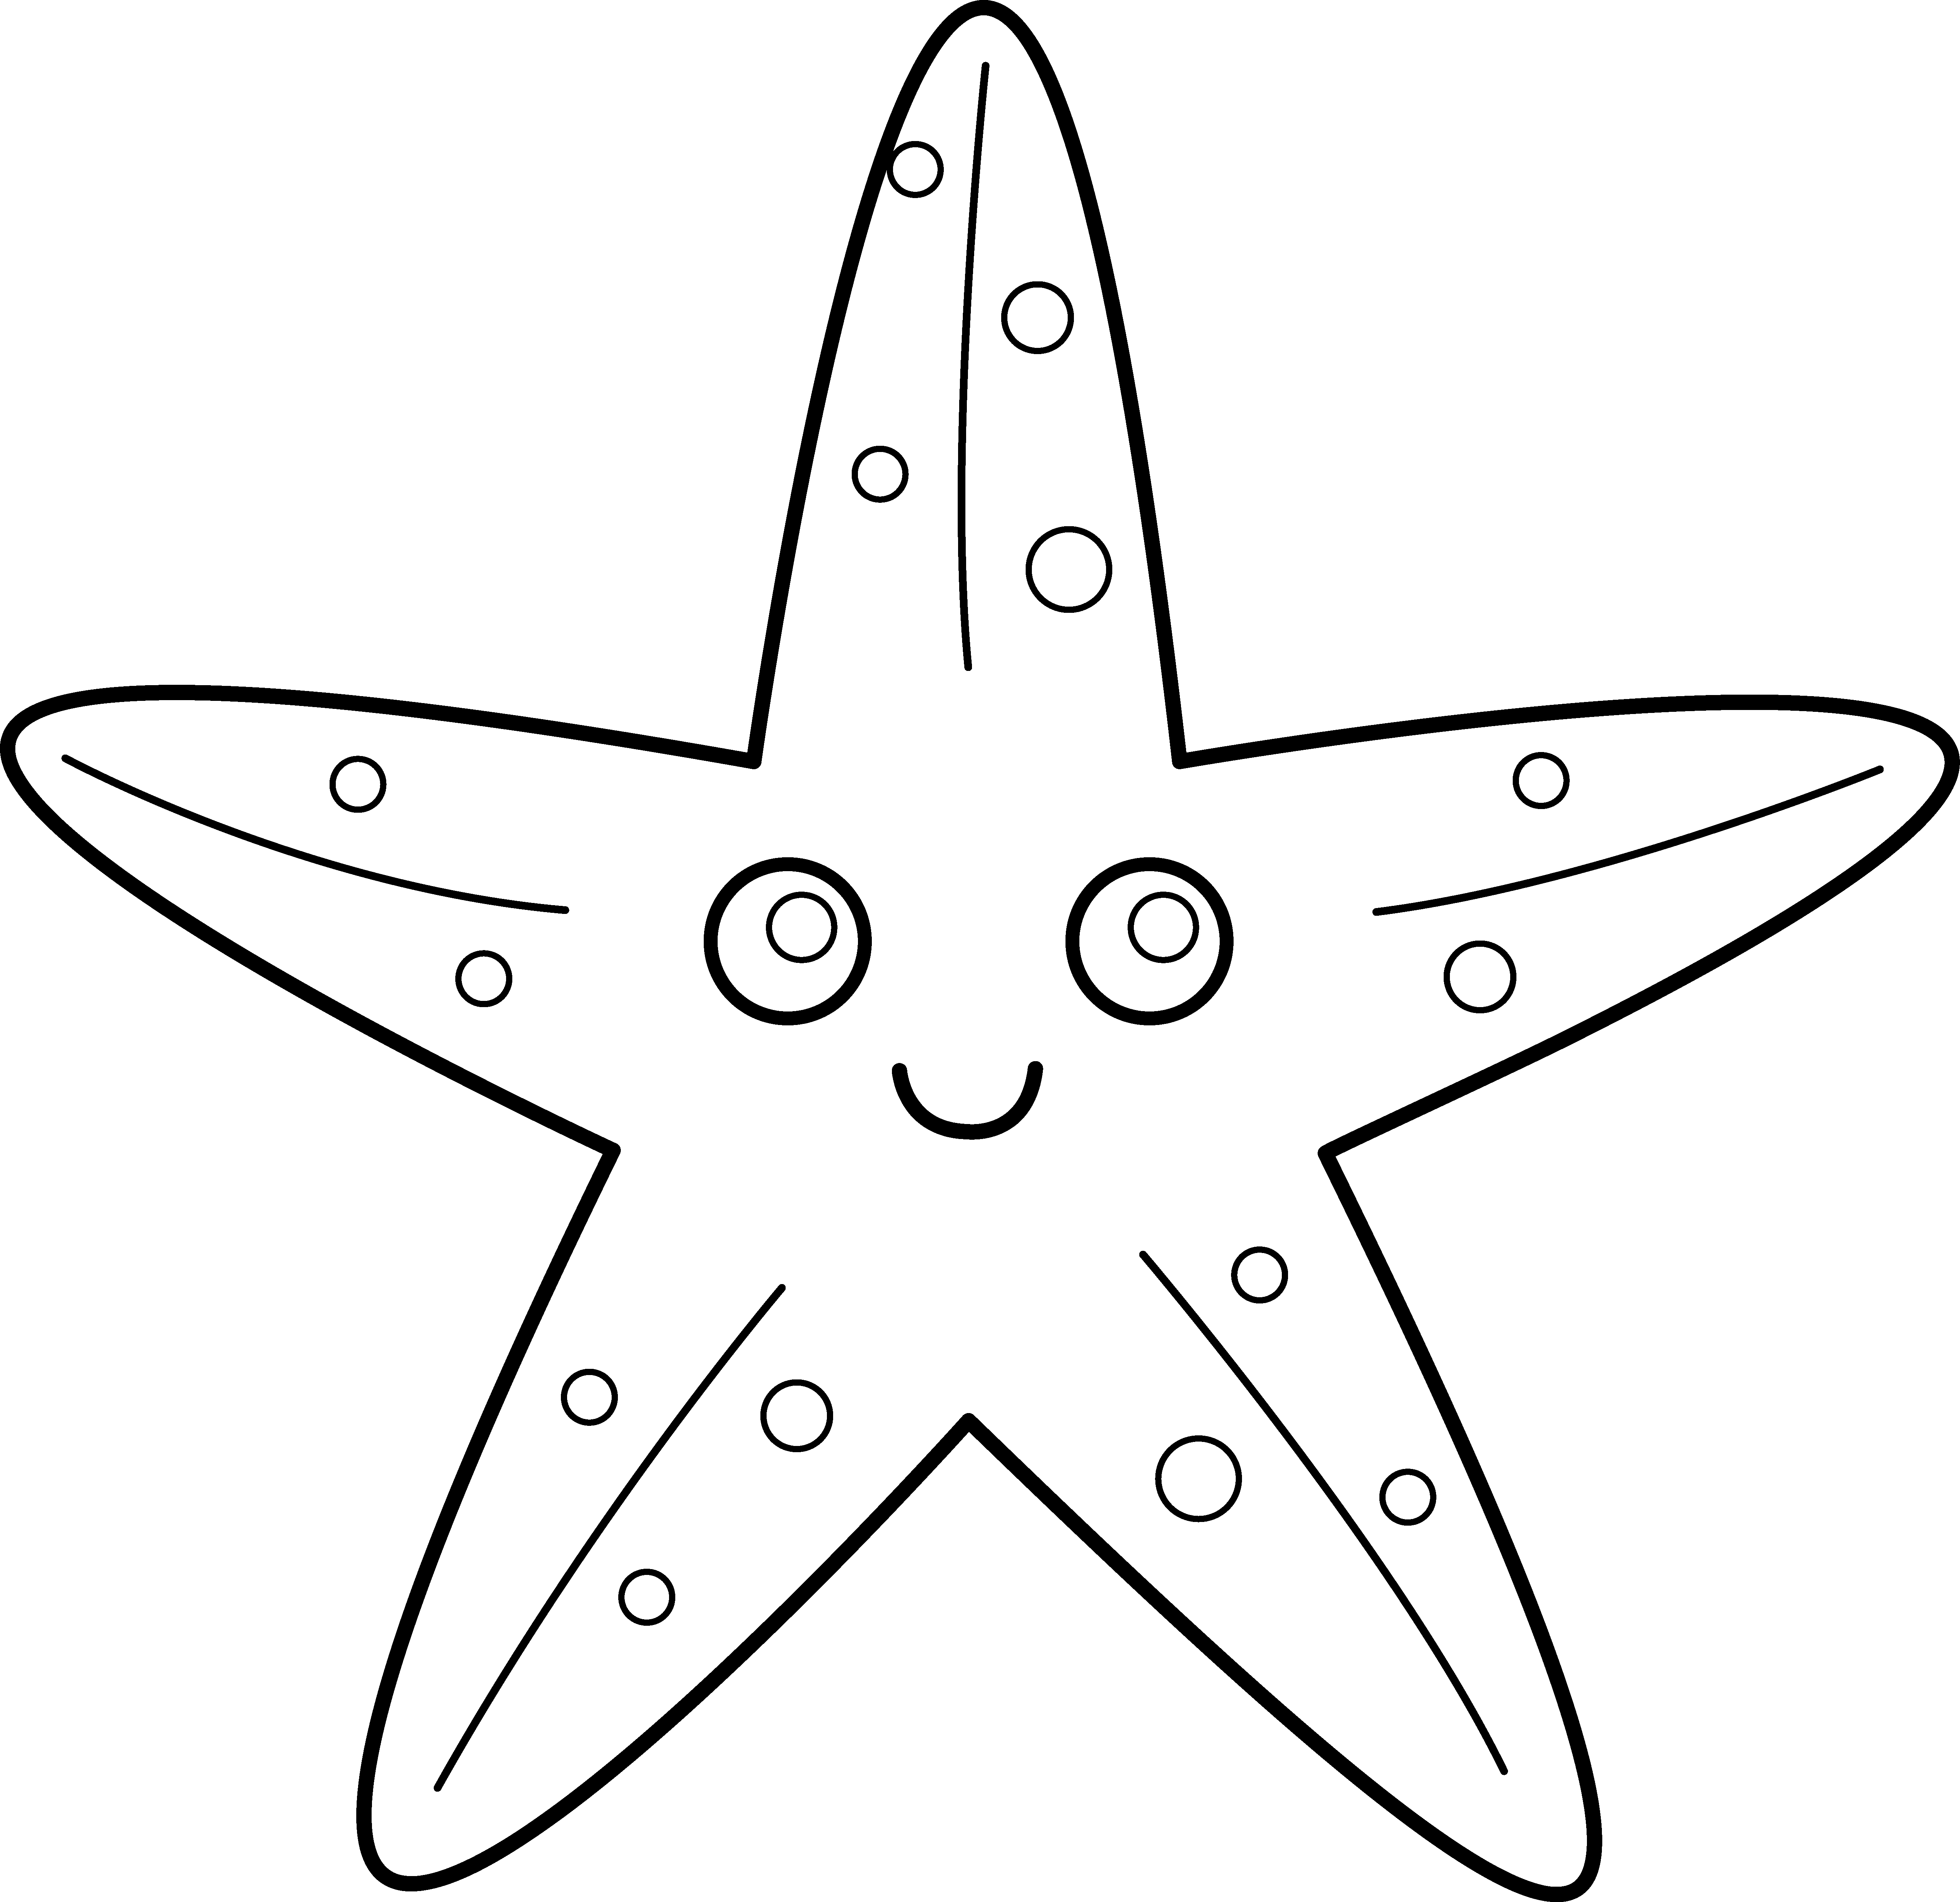 sea star coloring page ocean animal facts and coloring pages hubpages page star sea coloring